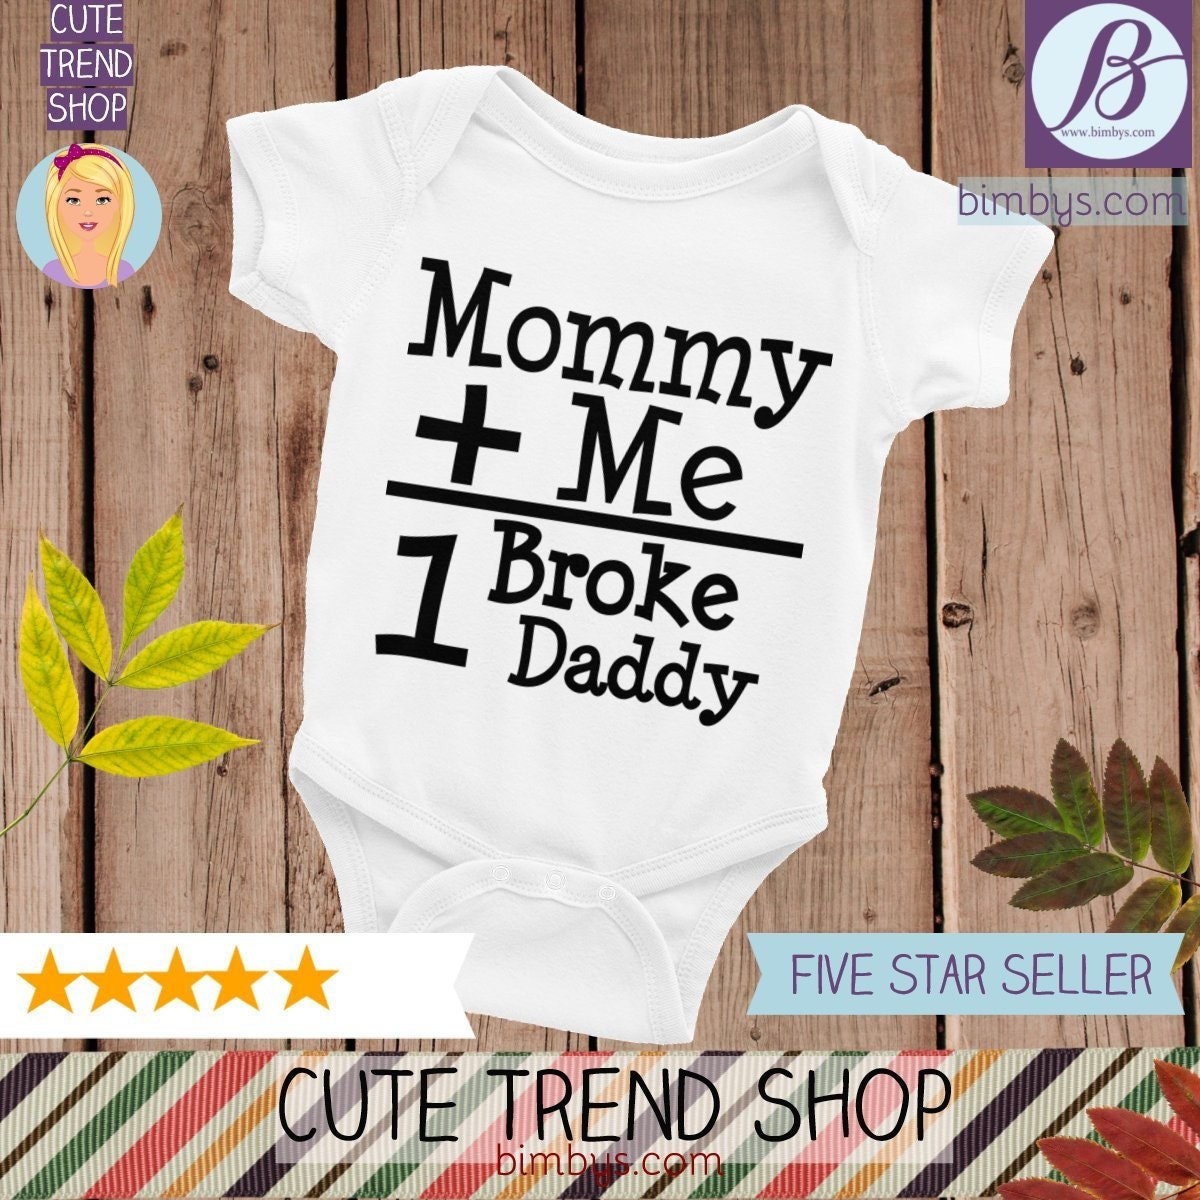 dbd9ec74b Mummy & Me Equals One Broke Daddy Infant Bodysuit, Funny Baby Creeper  Design, mommy and me, mommy and me outfit, mommy and me shirts, mommy